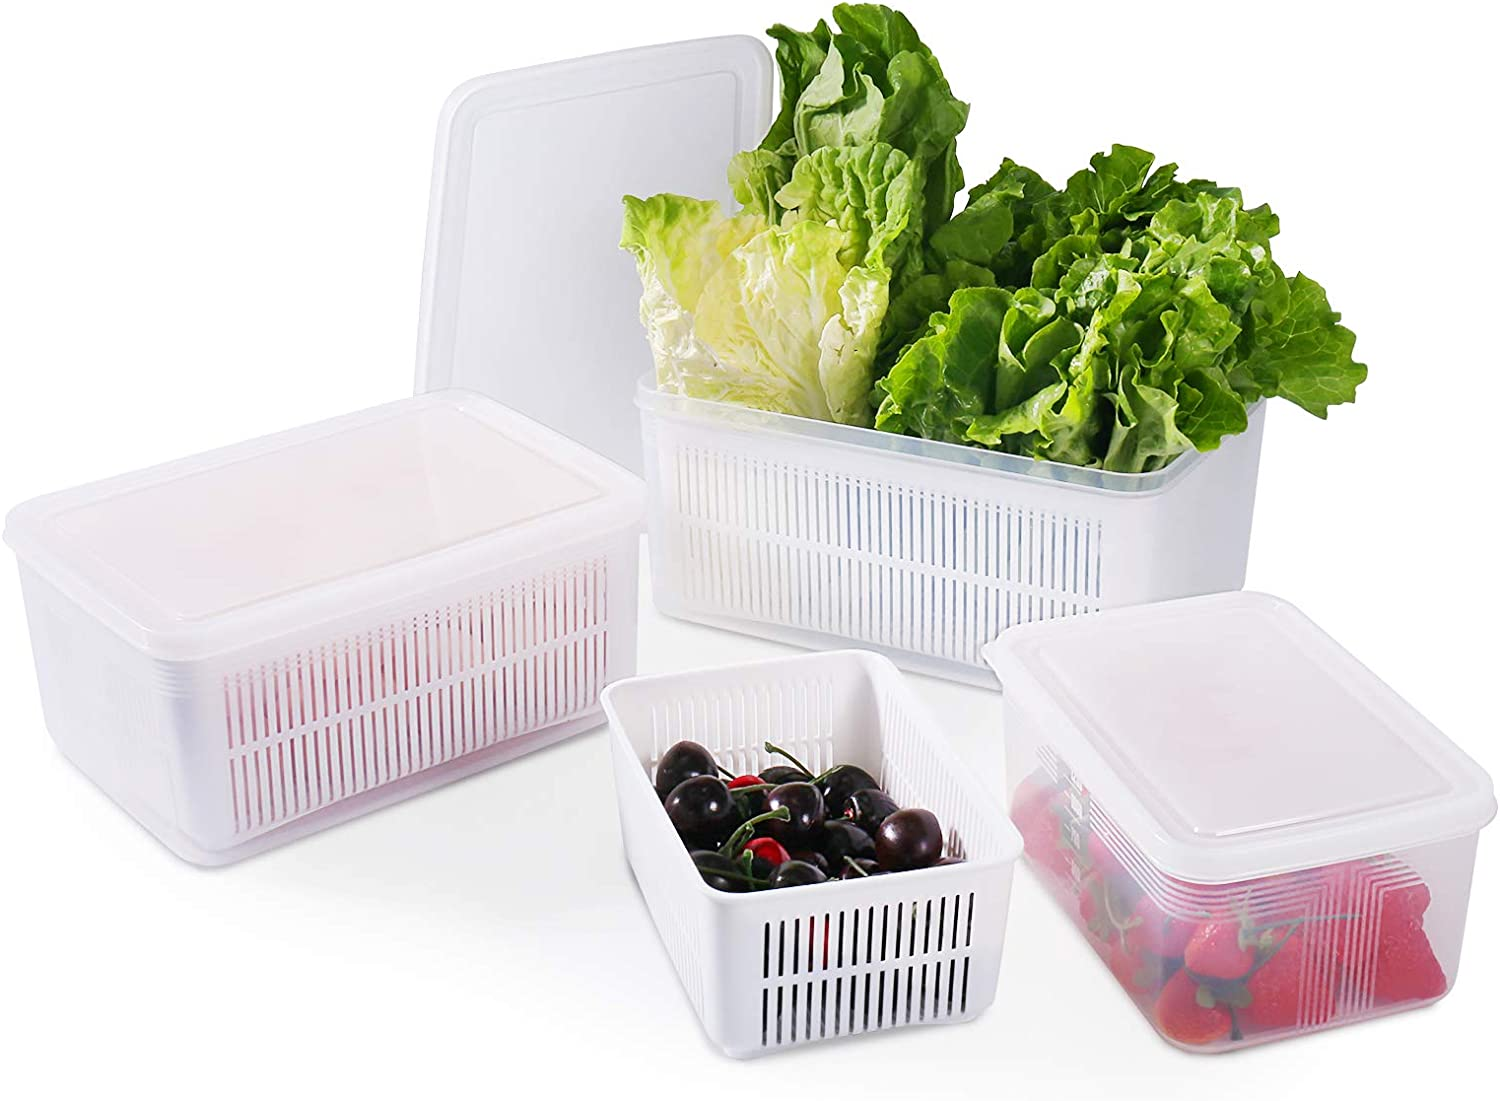 77L Food Storage Container for Fridge, (3 Pack) Fresh Vegetable Storage Container with Strainer, Stackable Freezer Food Organizers for Storing Fruits, Veggie, Salad